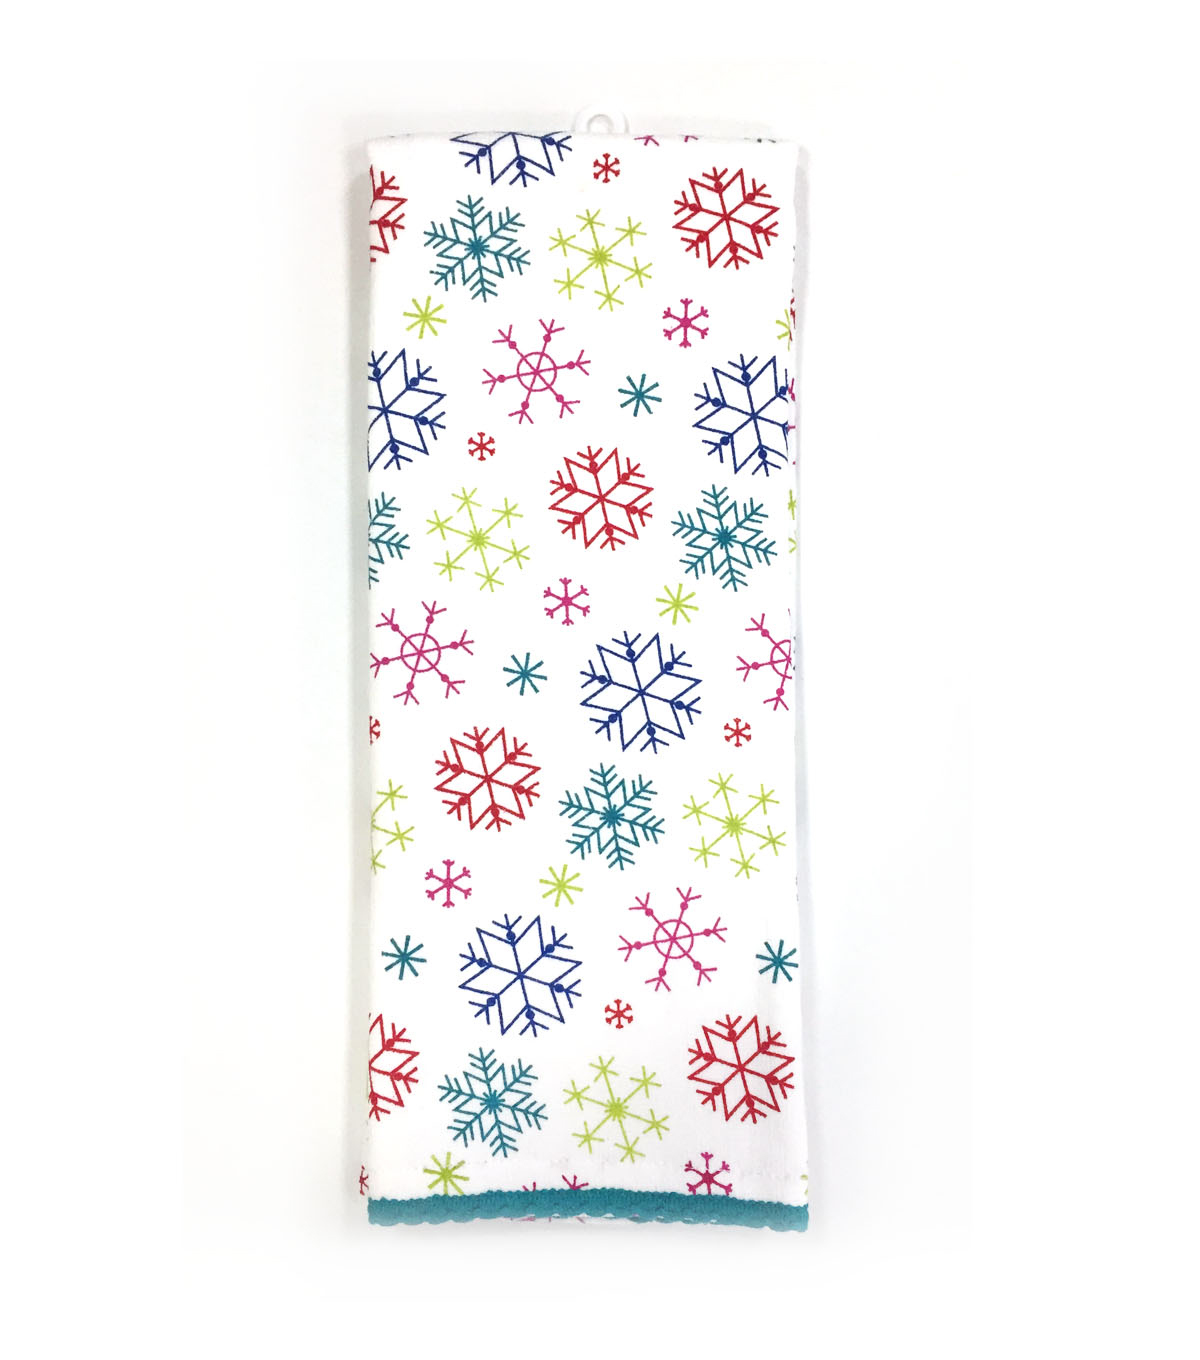 Maker\u0027s Holiday Christmas Ho Ho Ho Decor Kitchen Towel-Tossed Snowflakes